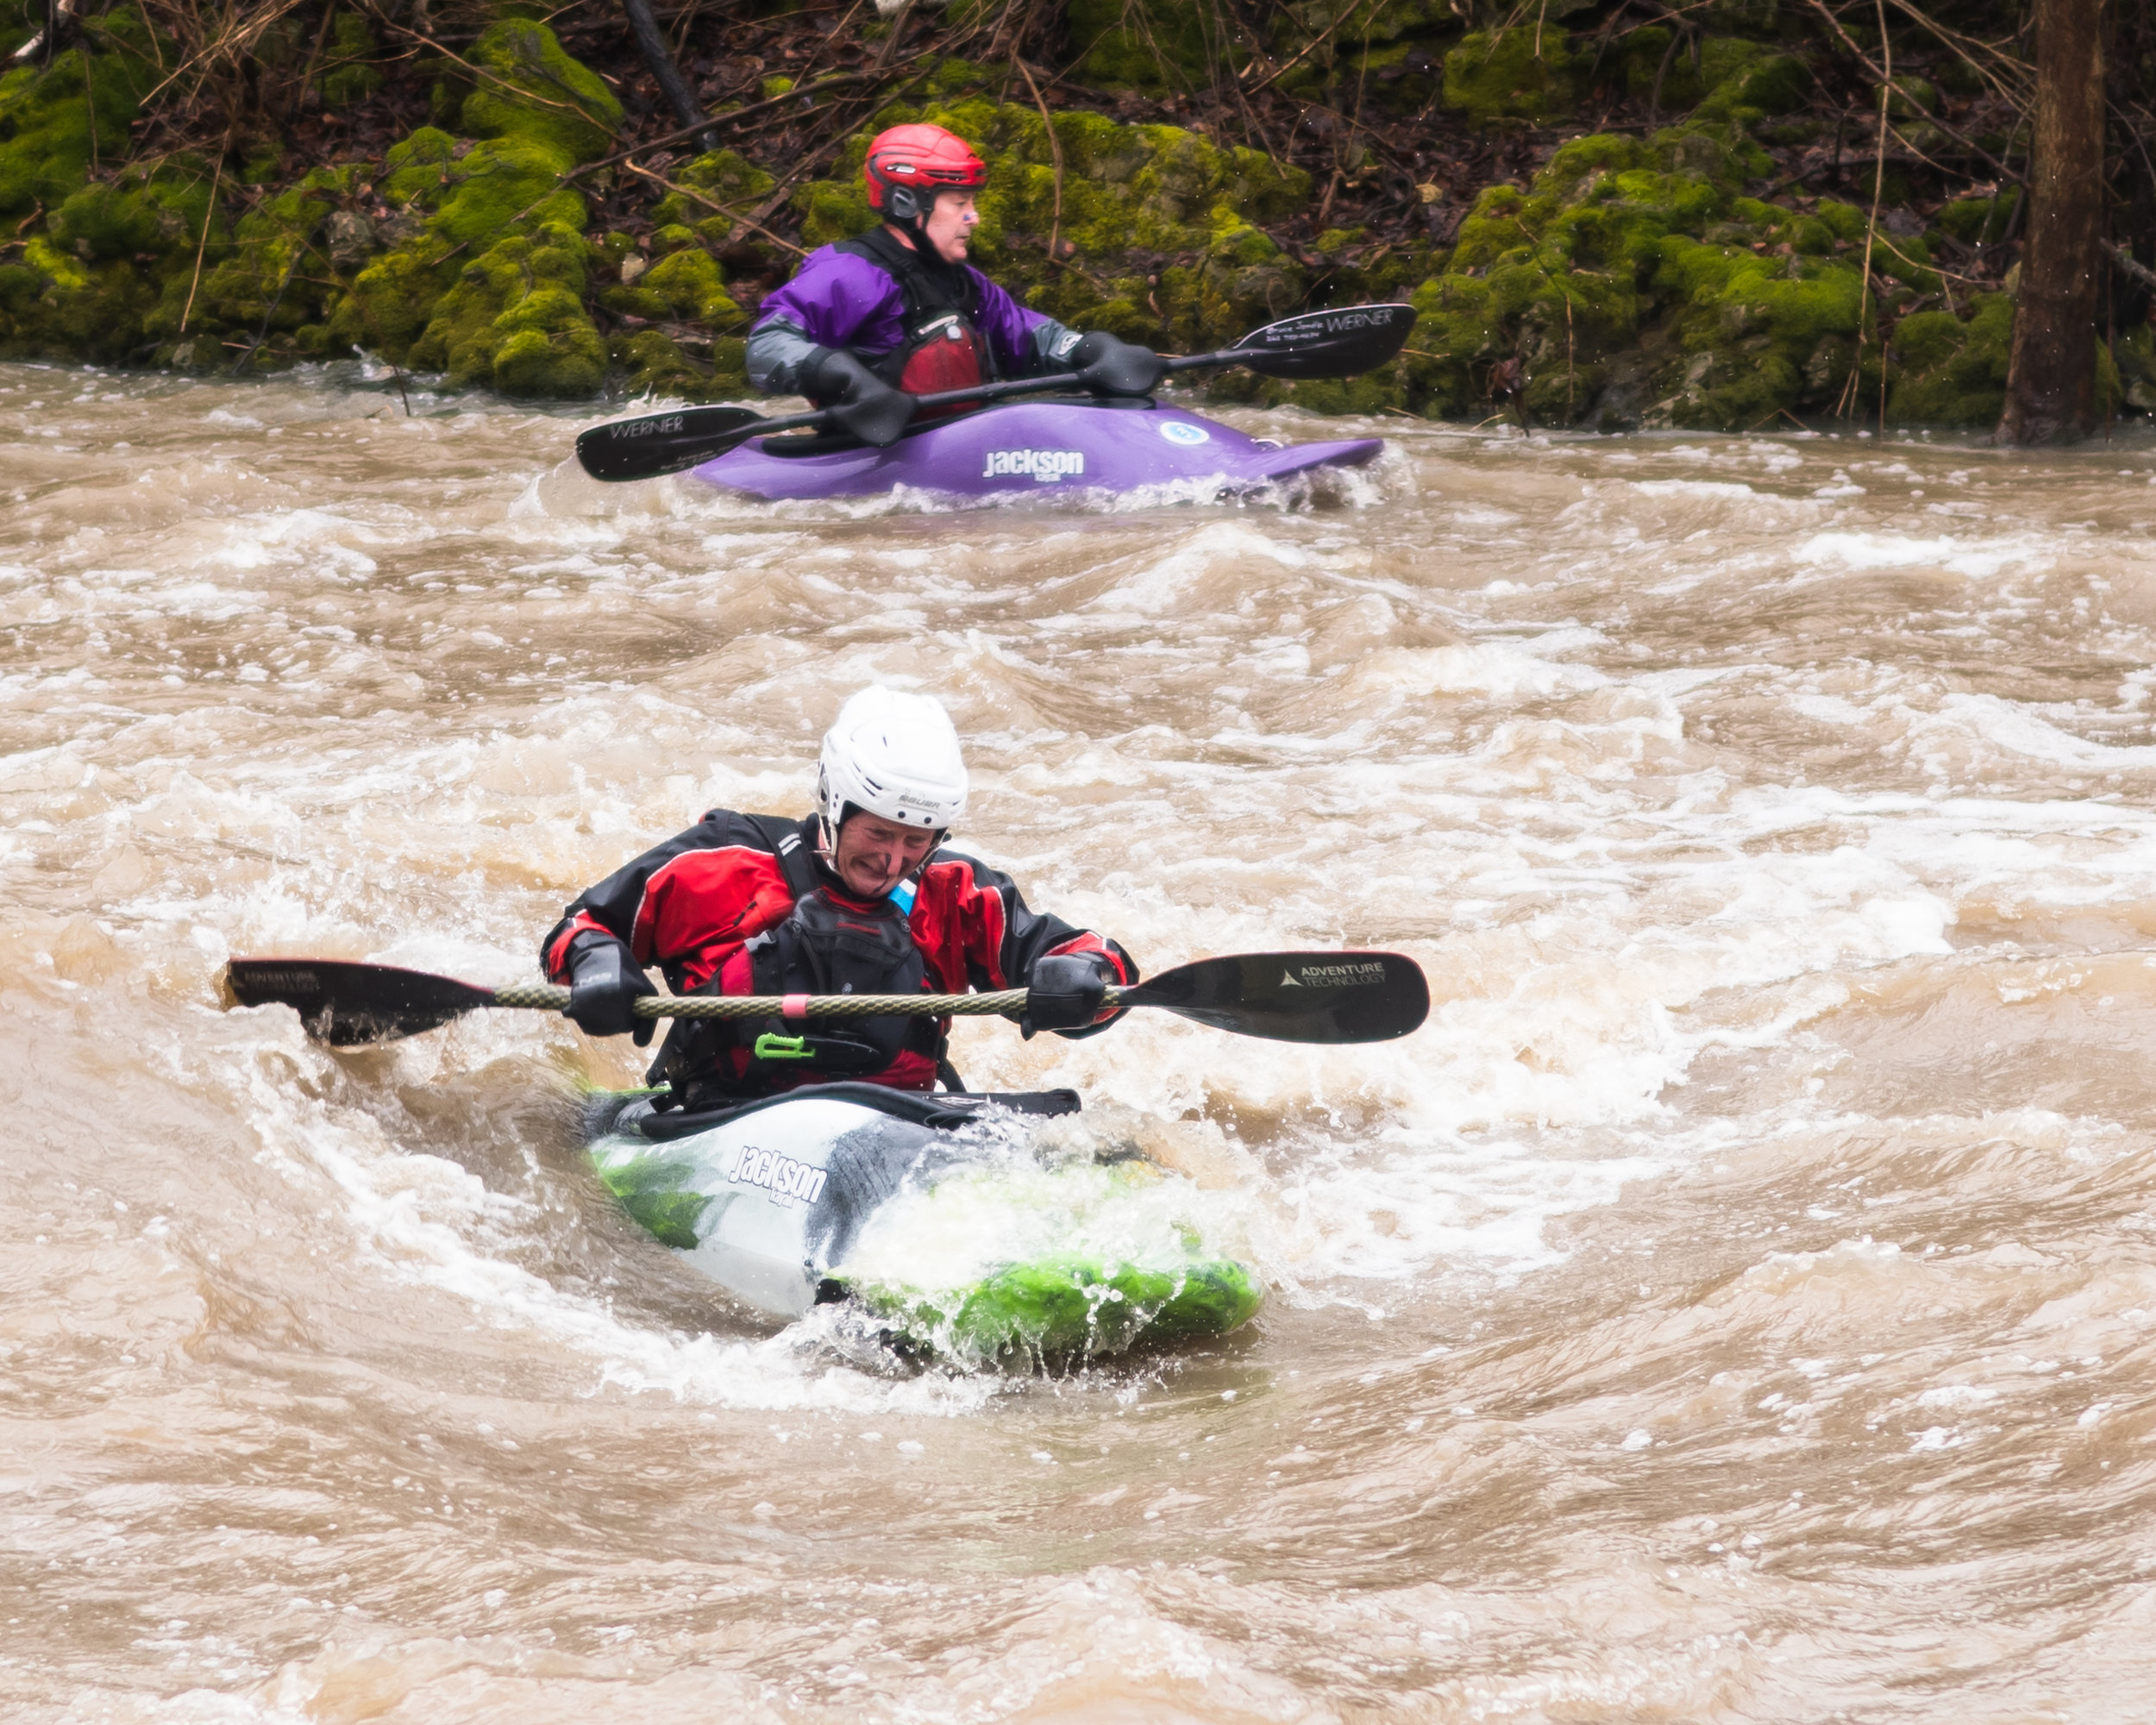 Whitewater kayakers Bruce Jondle and Jozef Milewsski fight through the rapids of the Root River during rainy conditions on Sunday